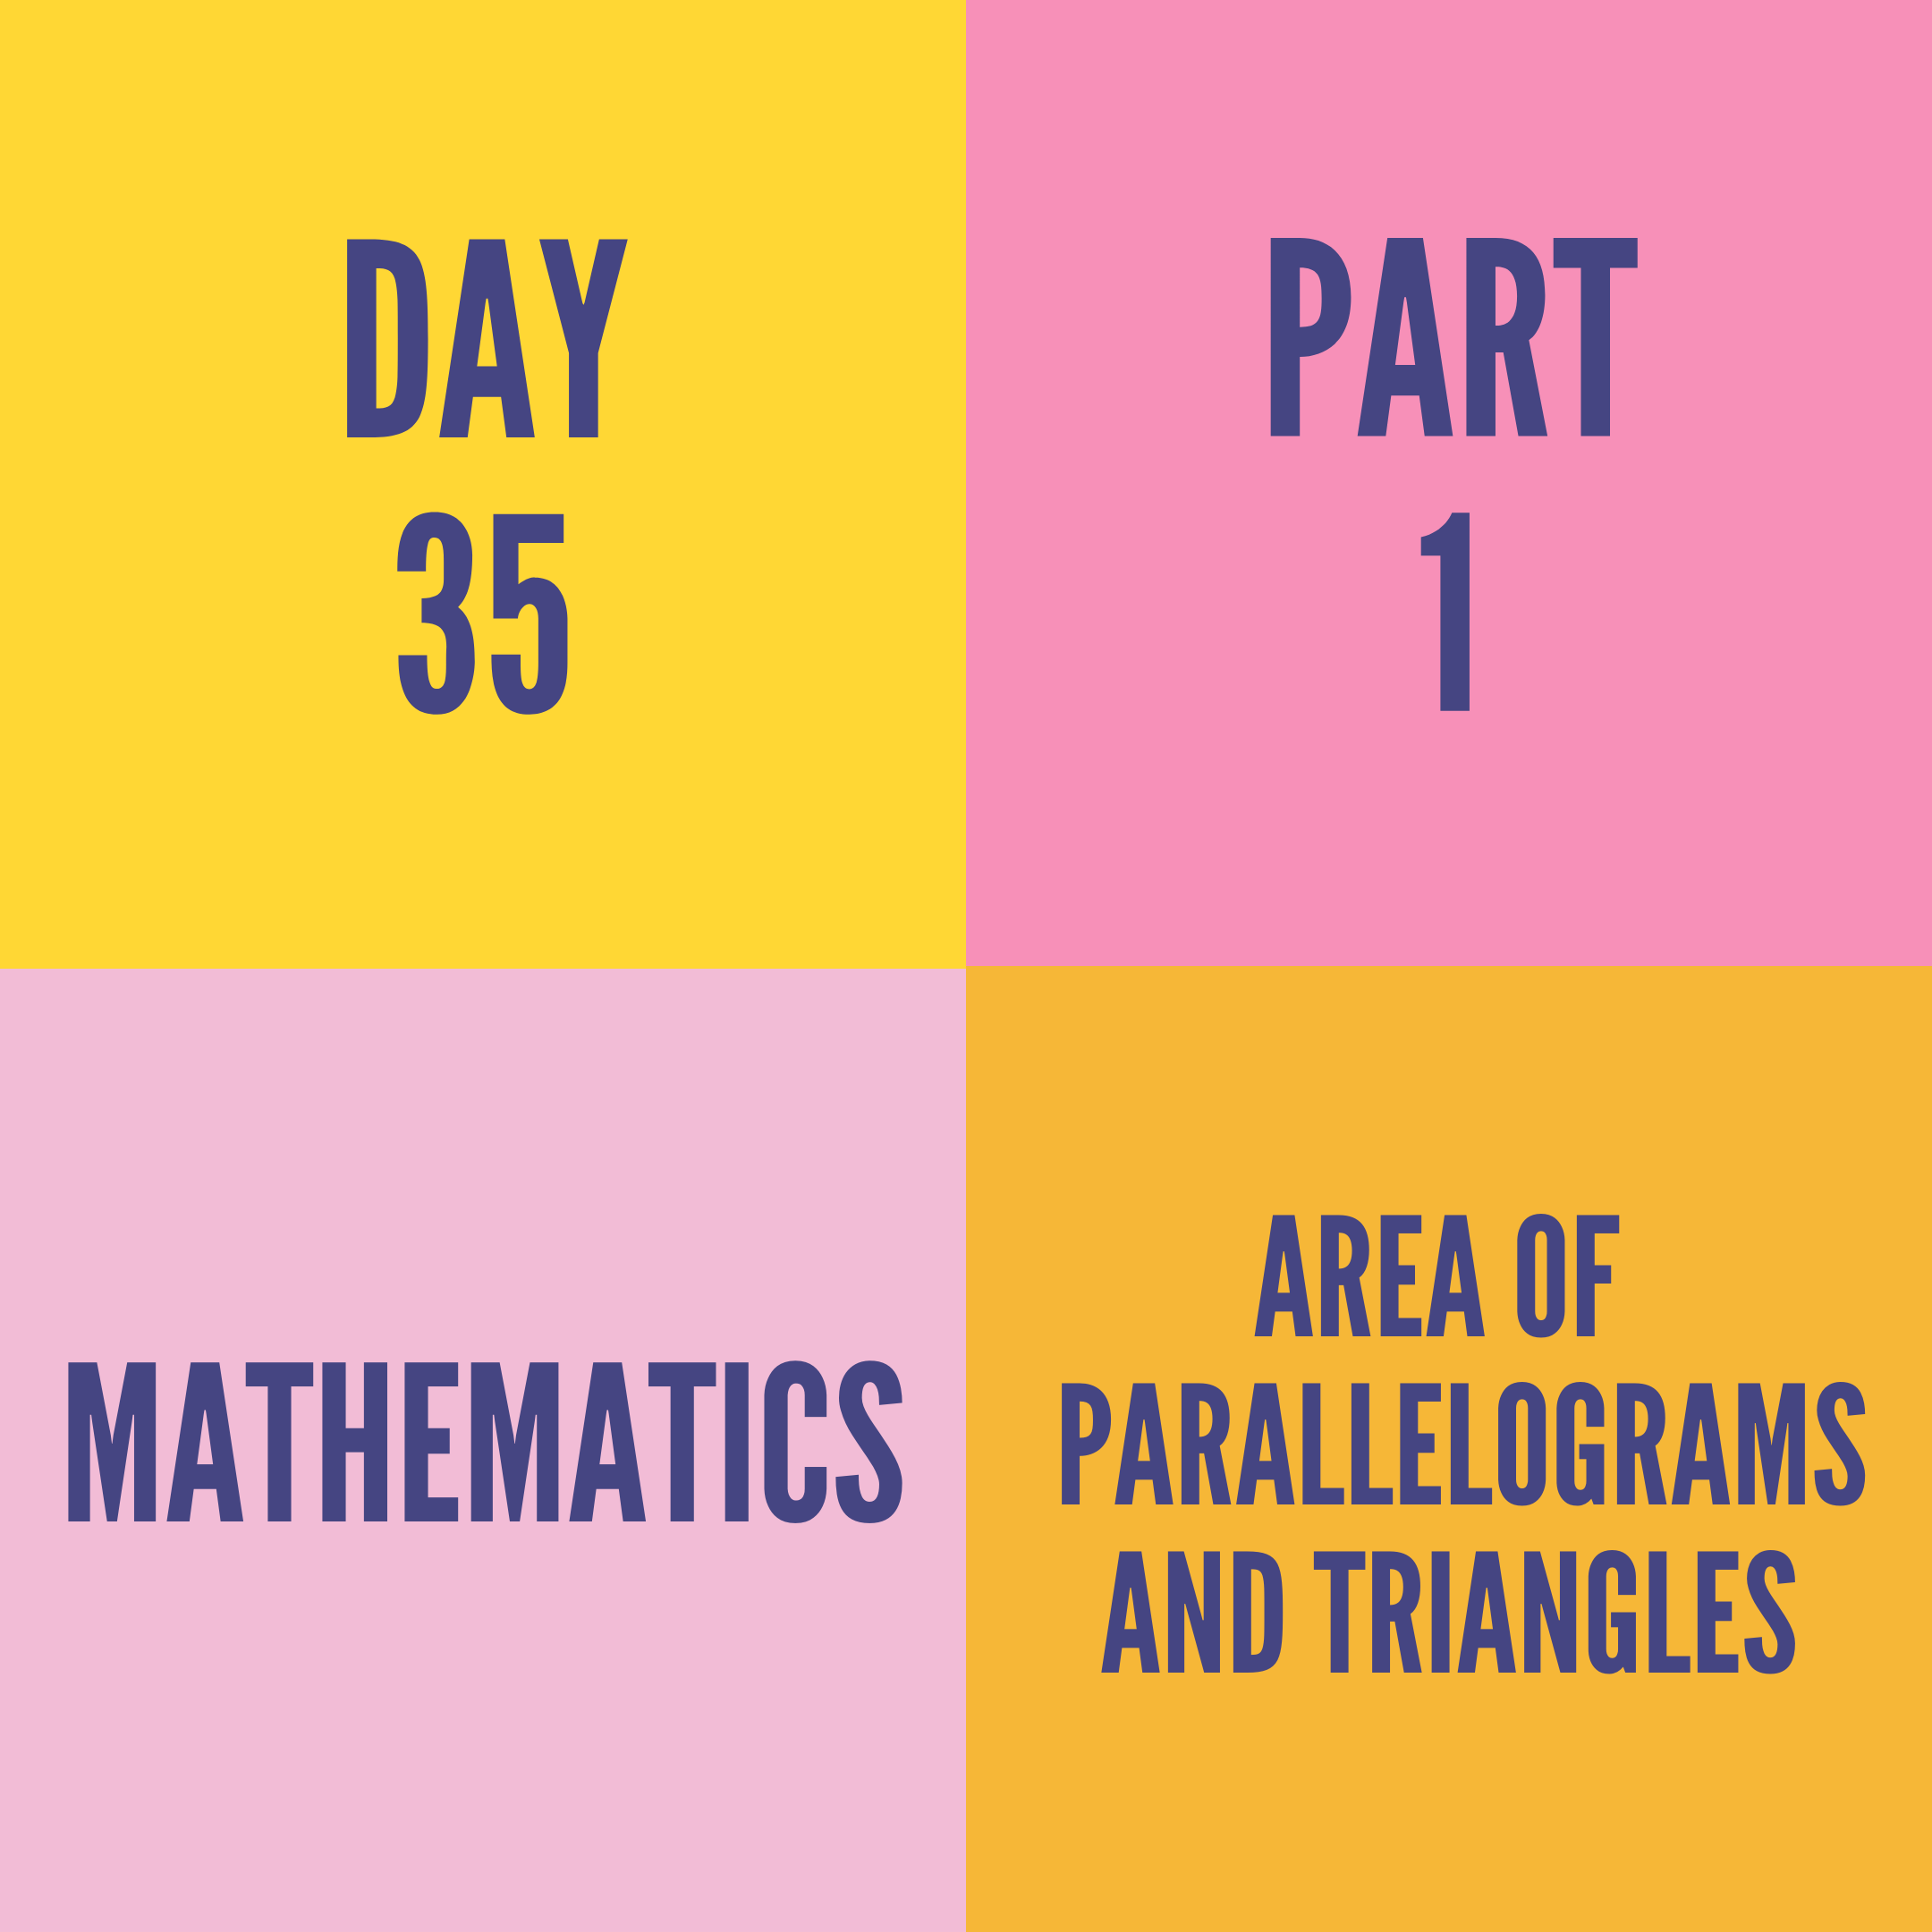 DAY-35 PART-1 AREA OF PARALLELOGRAMS AND TRIANGLES